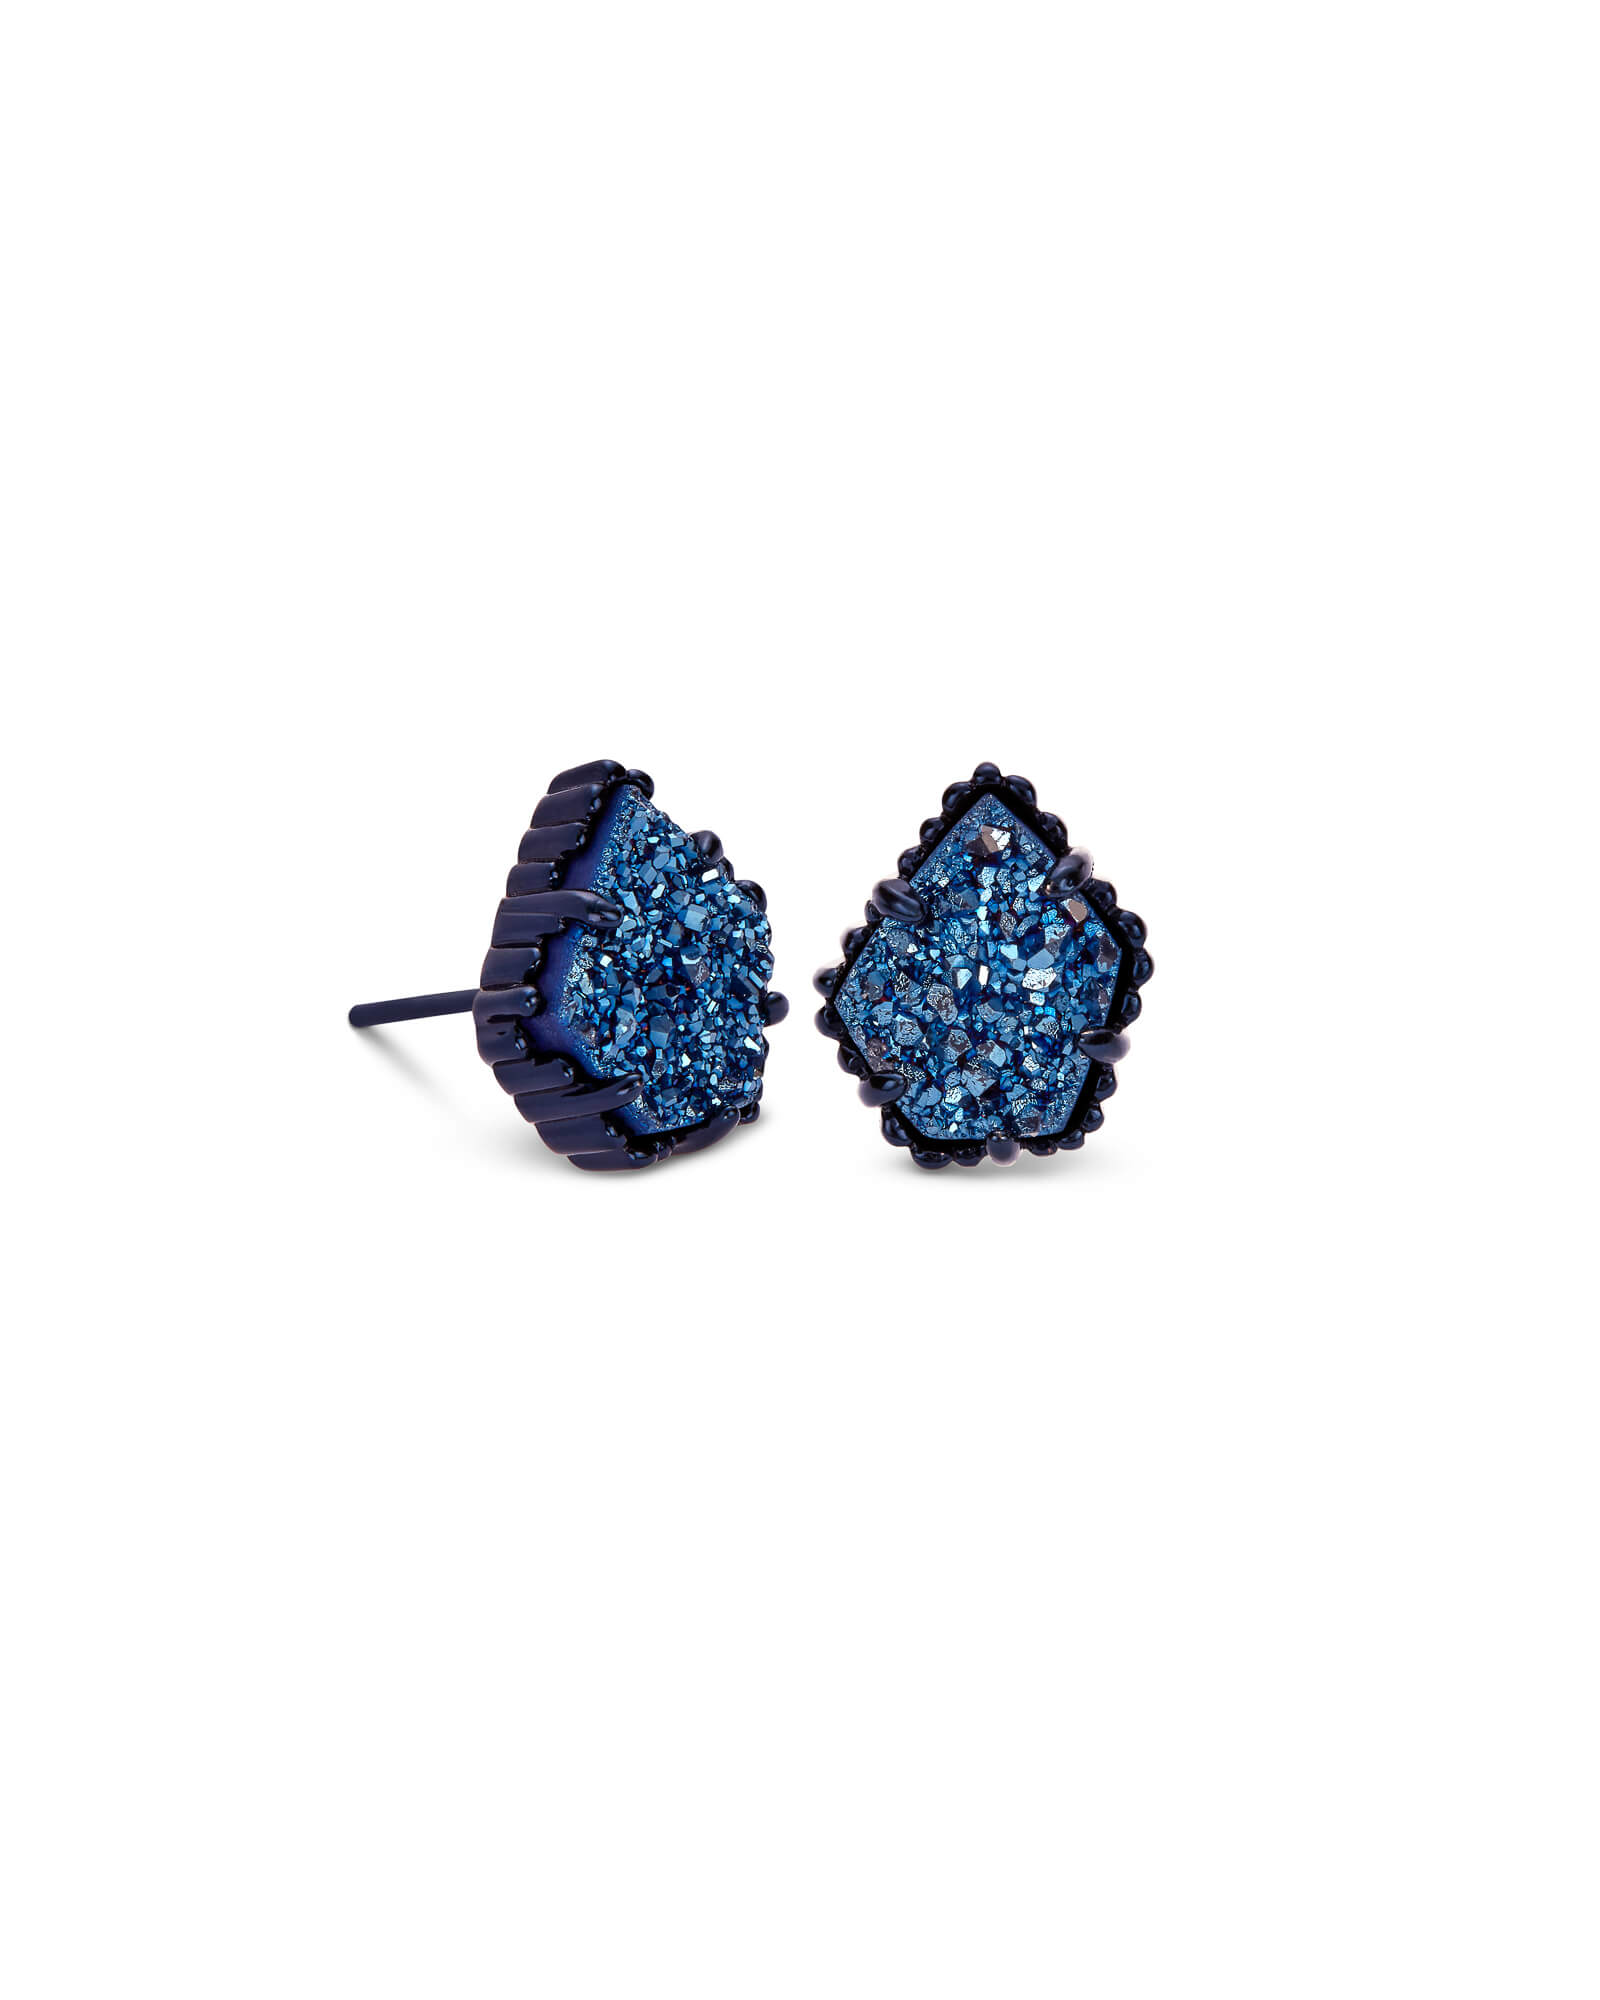 Tessa Navy Gunmetal Stud Earrings in Blue Drusy